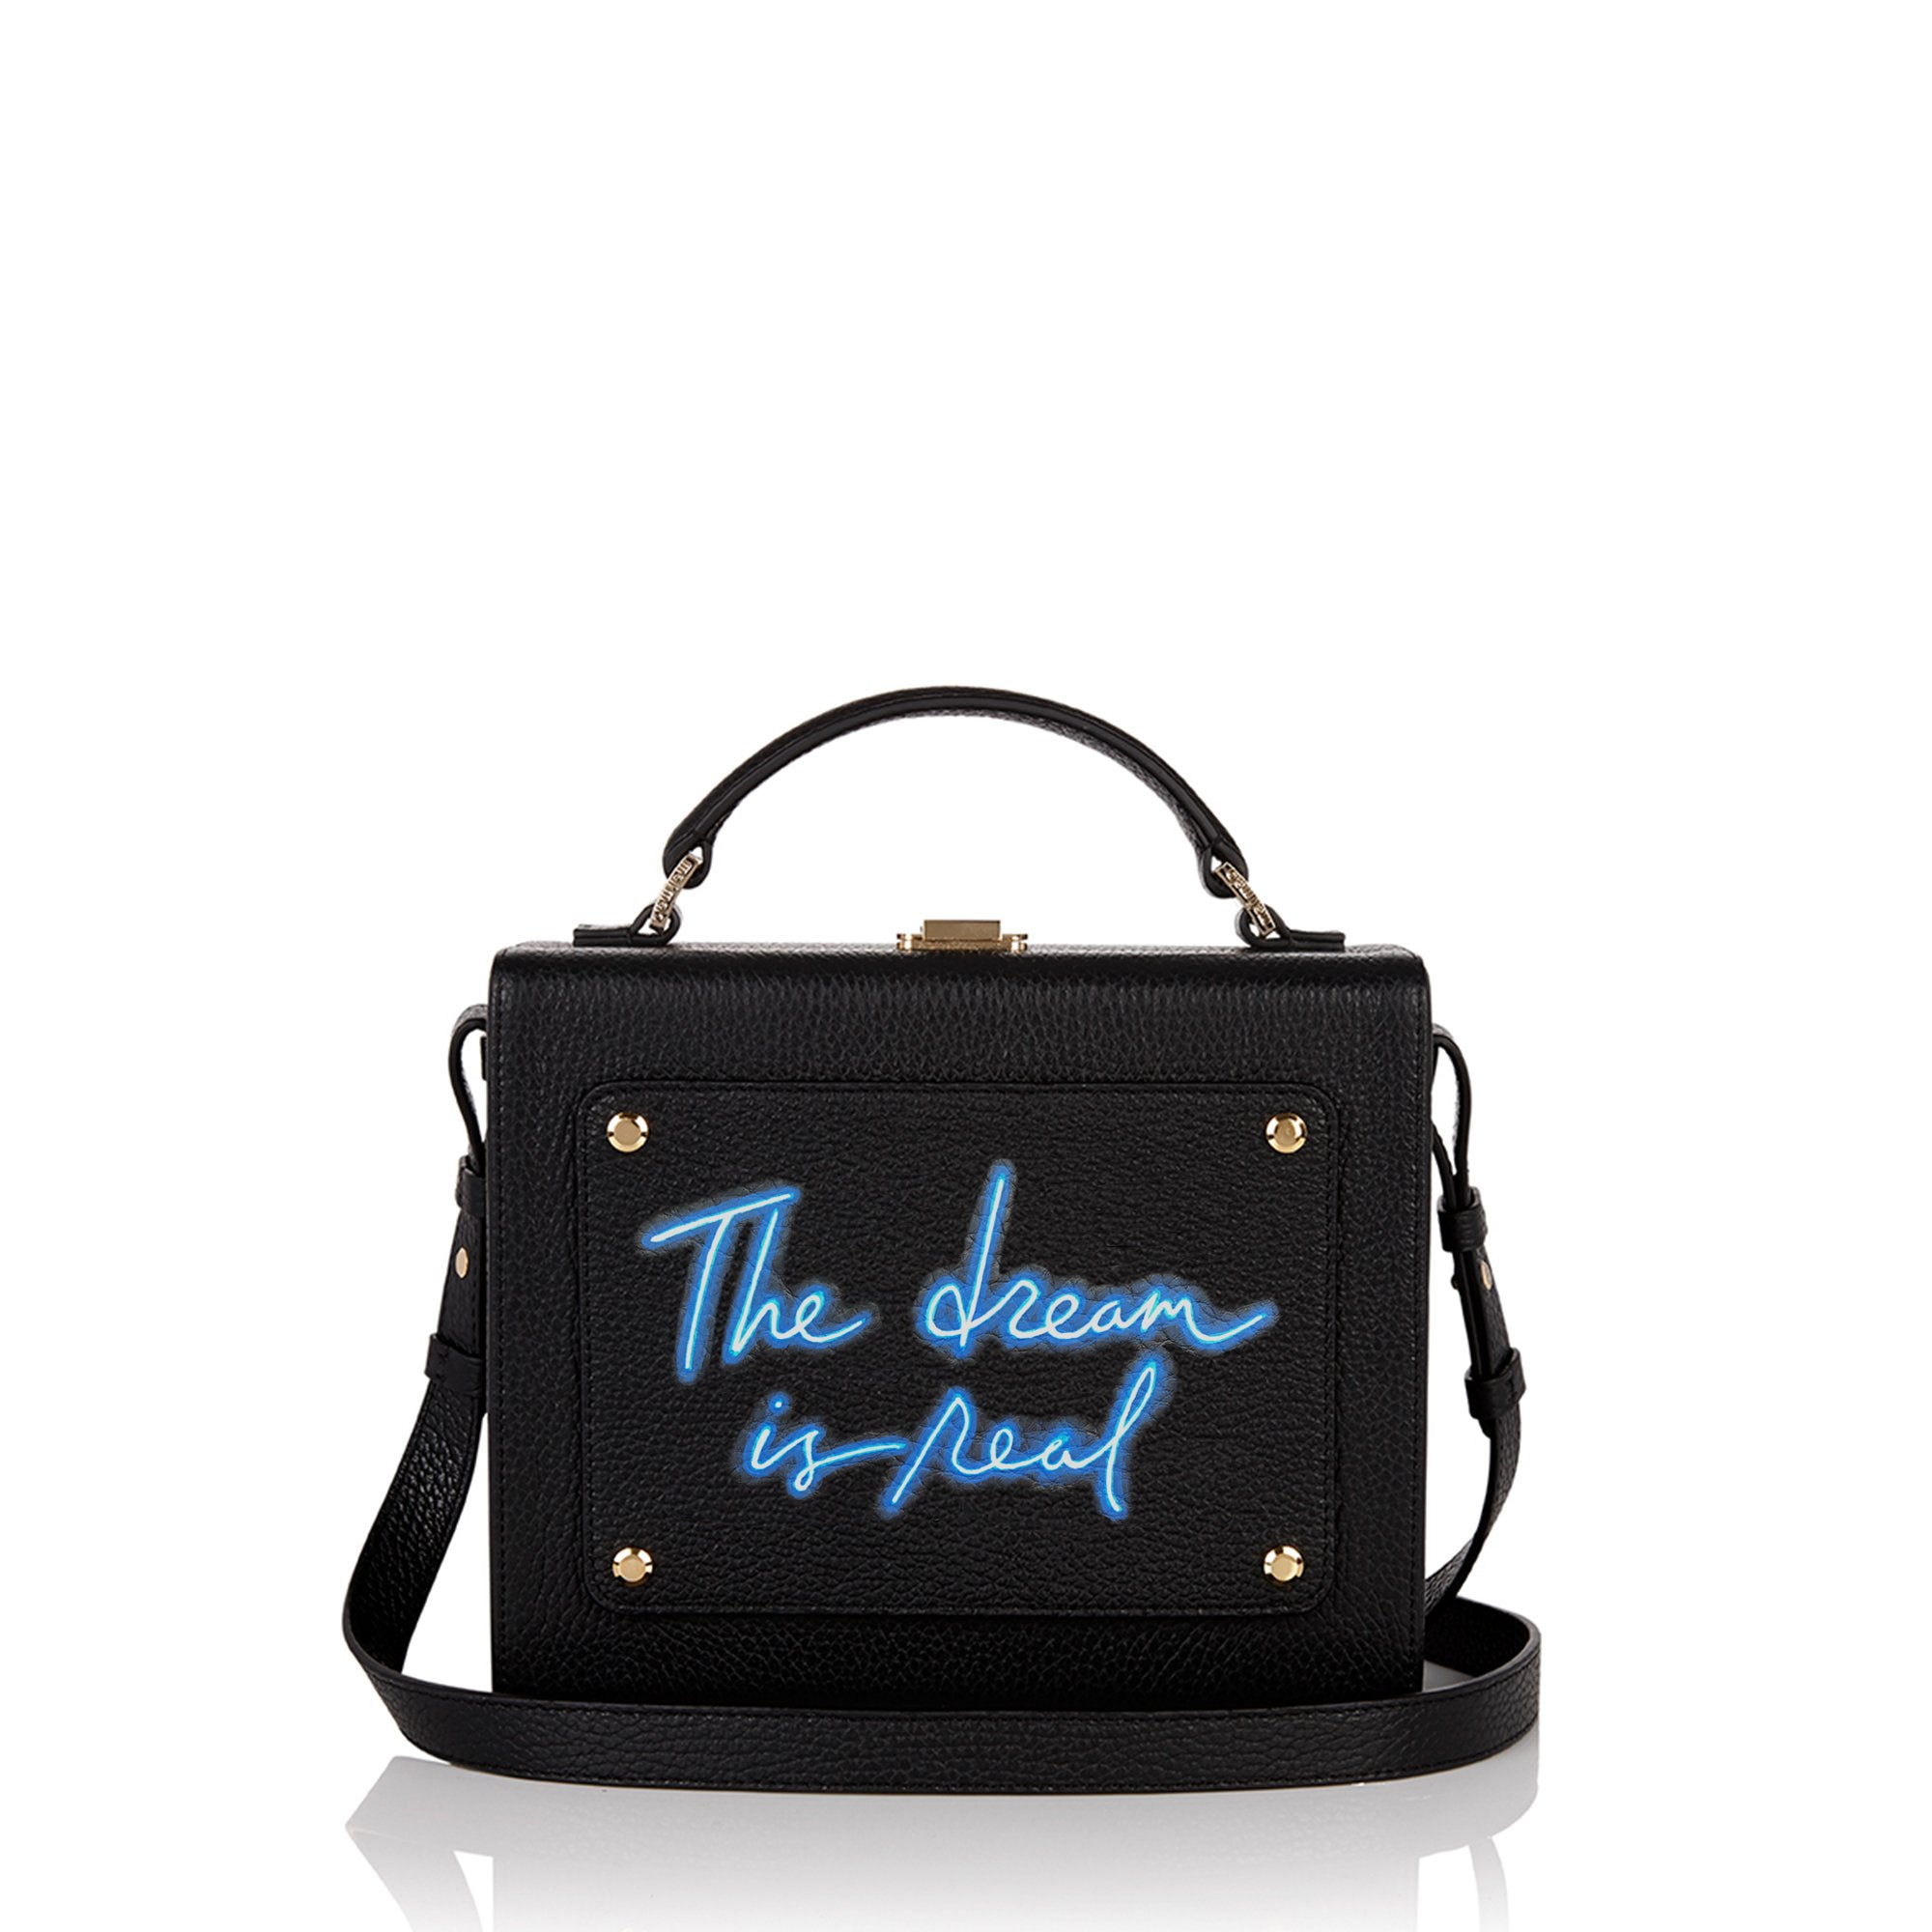 "Art Bag 艺术包 黑色 ""The dream is real""- Olivia Steele"